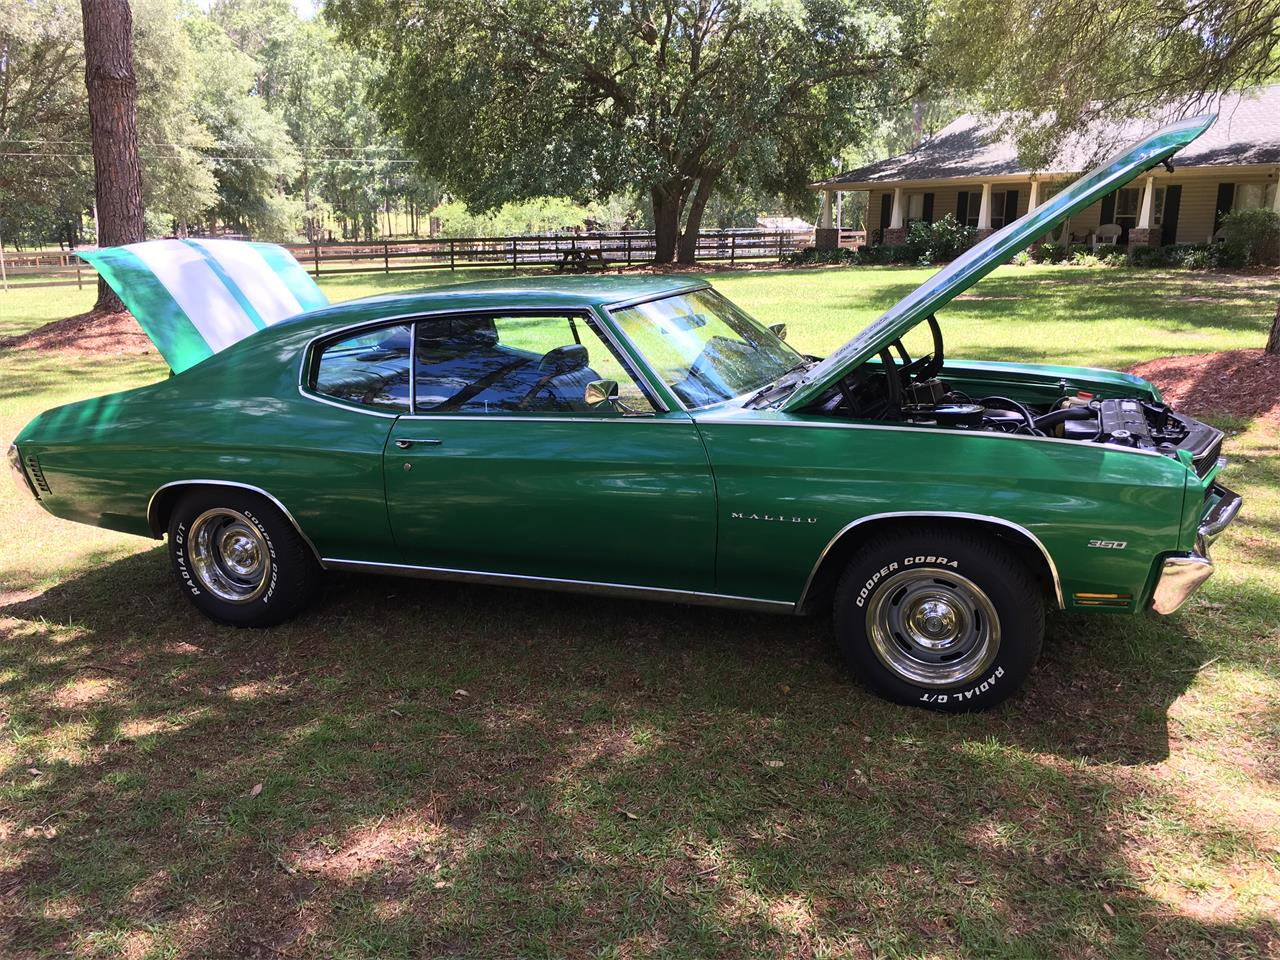 For Sale: 1970 Chevrolet Chevelle in Tallahassee, Florida